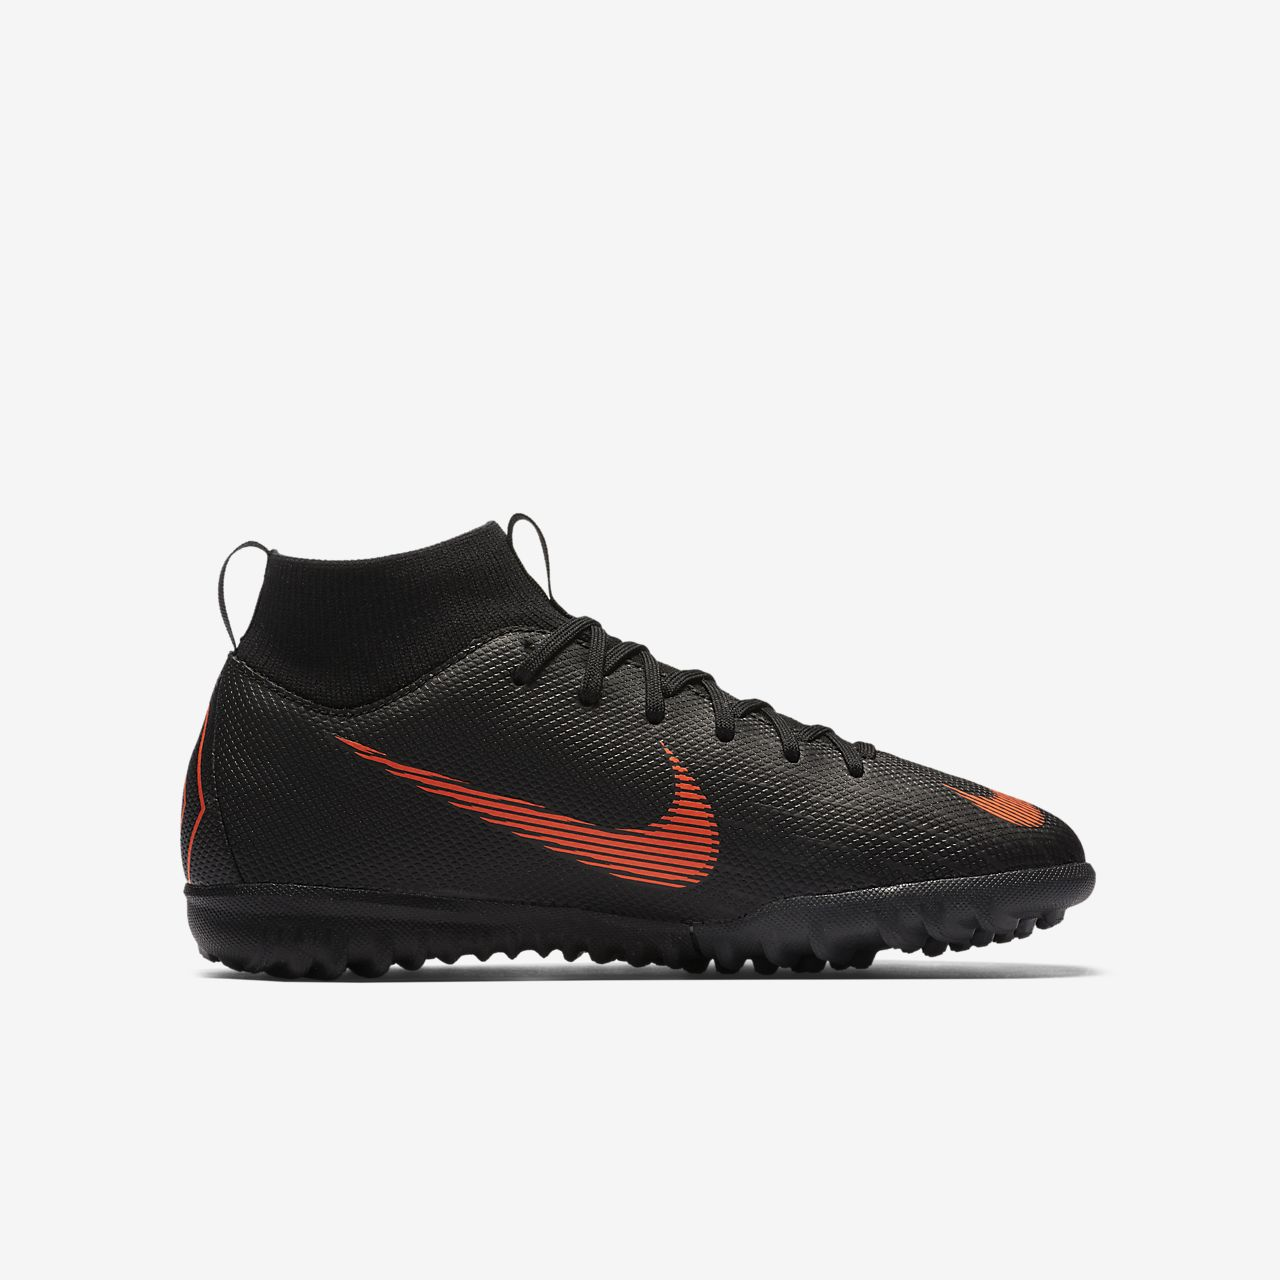 ... Nike Jr. MercurialX Superfly VI Academy Younger/Older Kids' Turf  Football Shoe